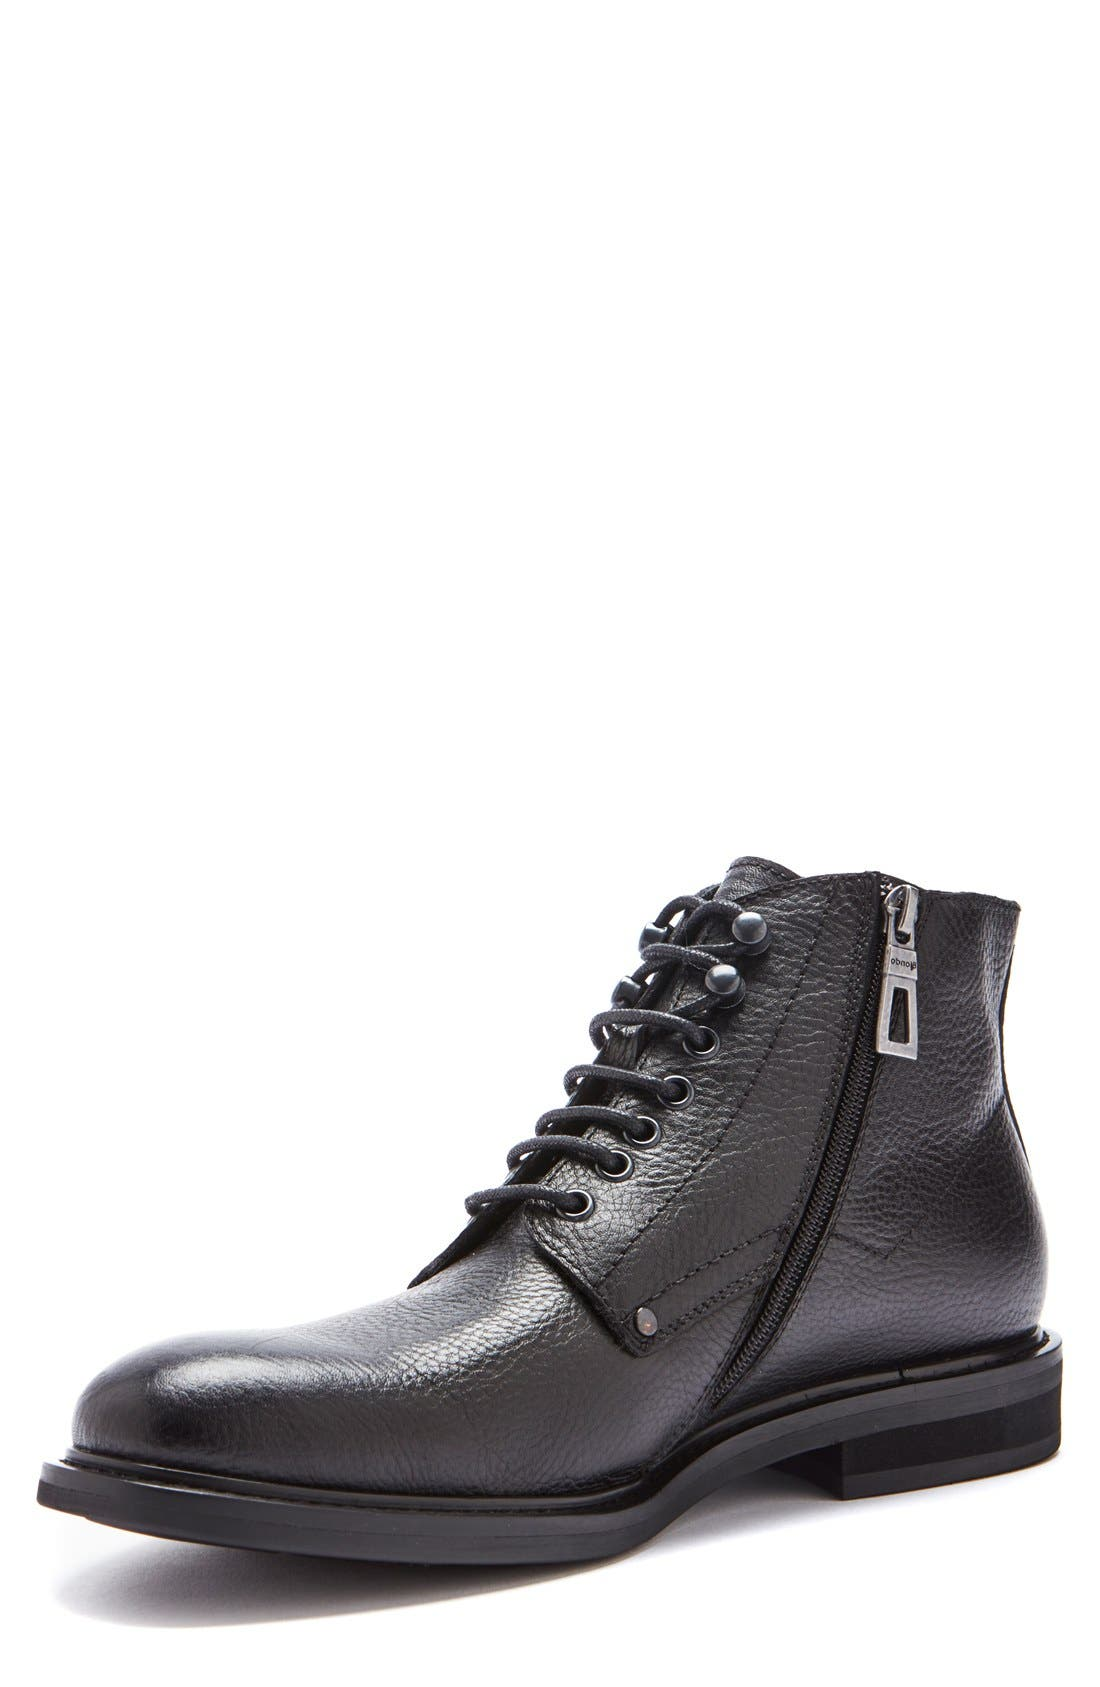 Main Image - Blondo 'Float' Waterproof Plain Toe Boot (Men)